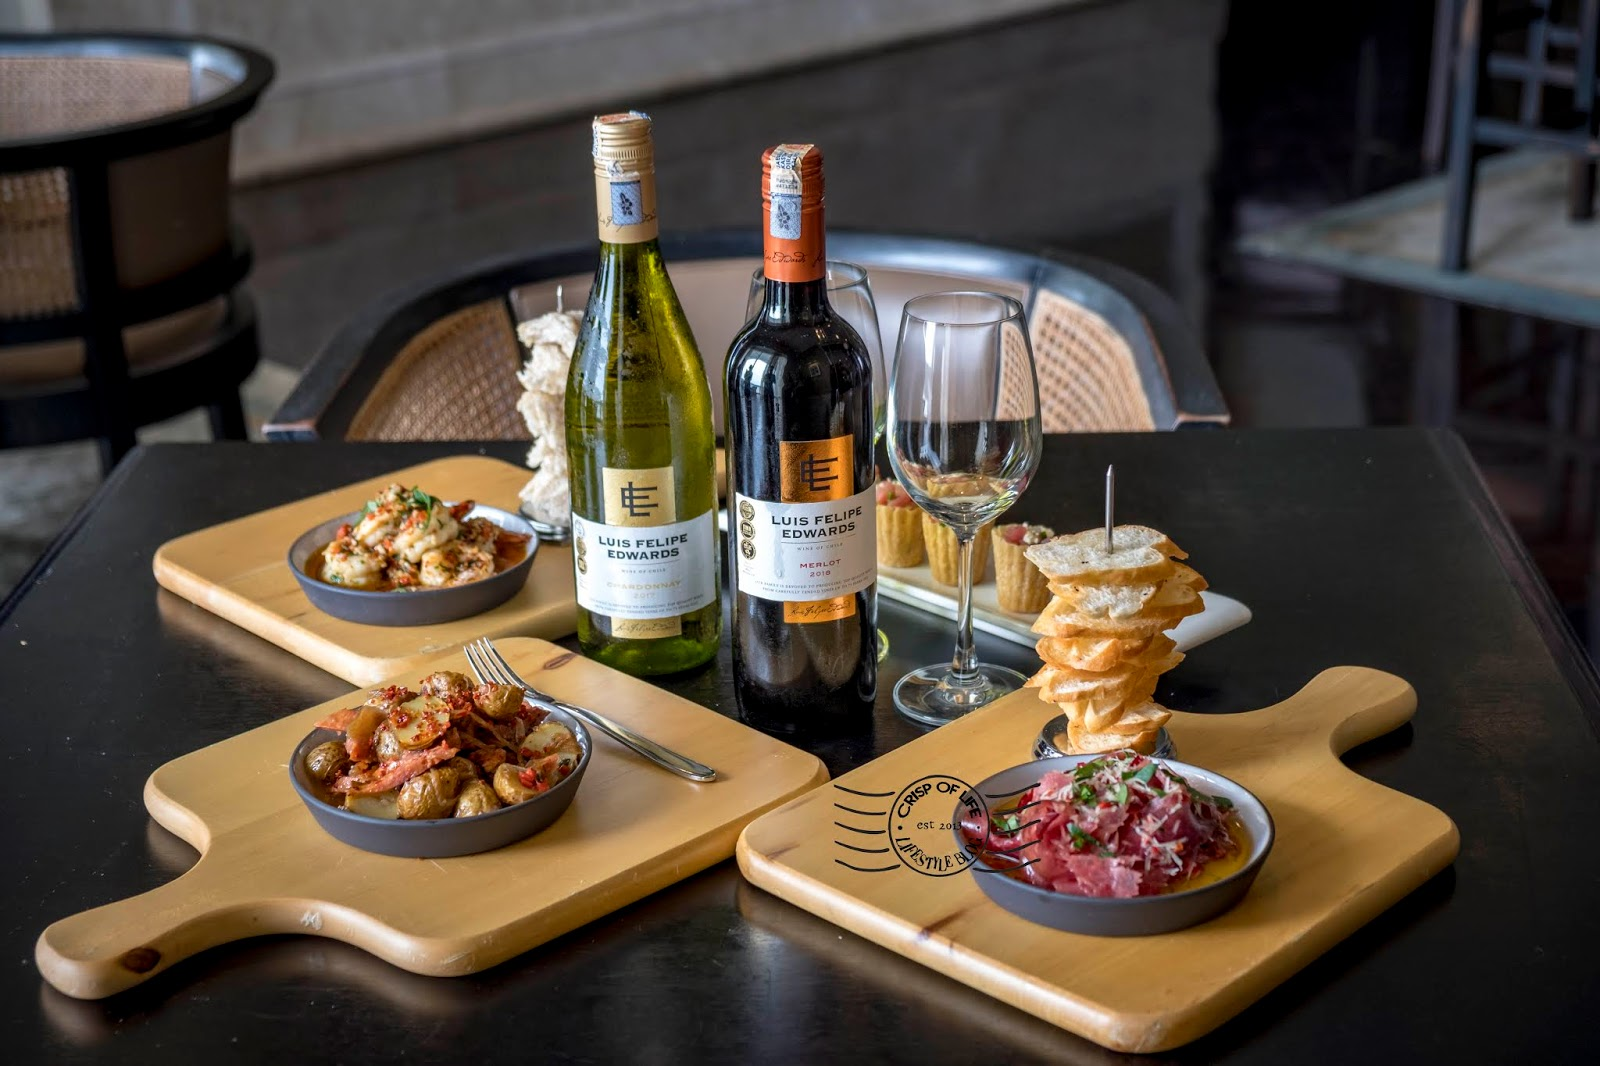 Eastern & Oriental Hotel Re-invented Tapas Menu at Planters Lounge